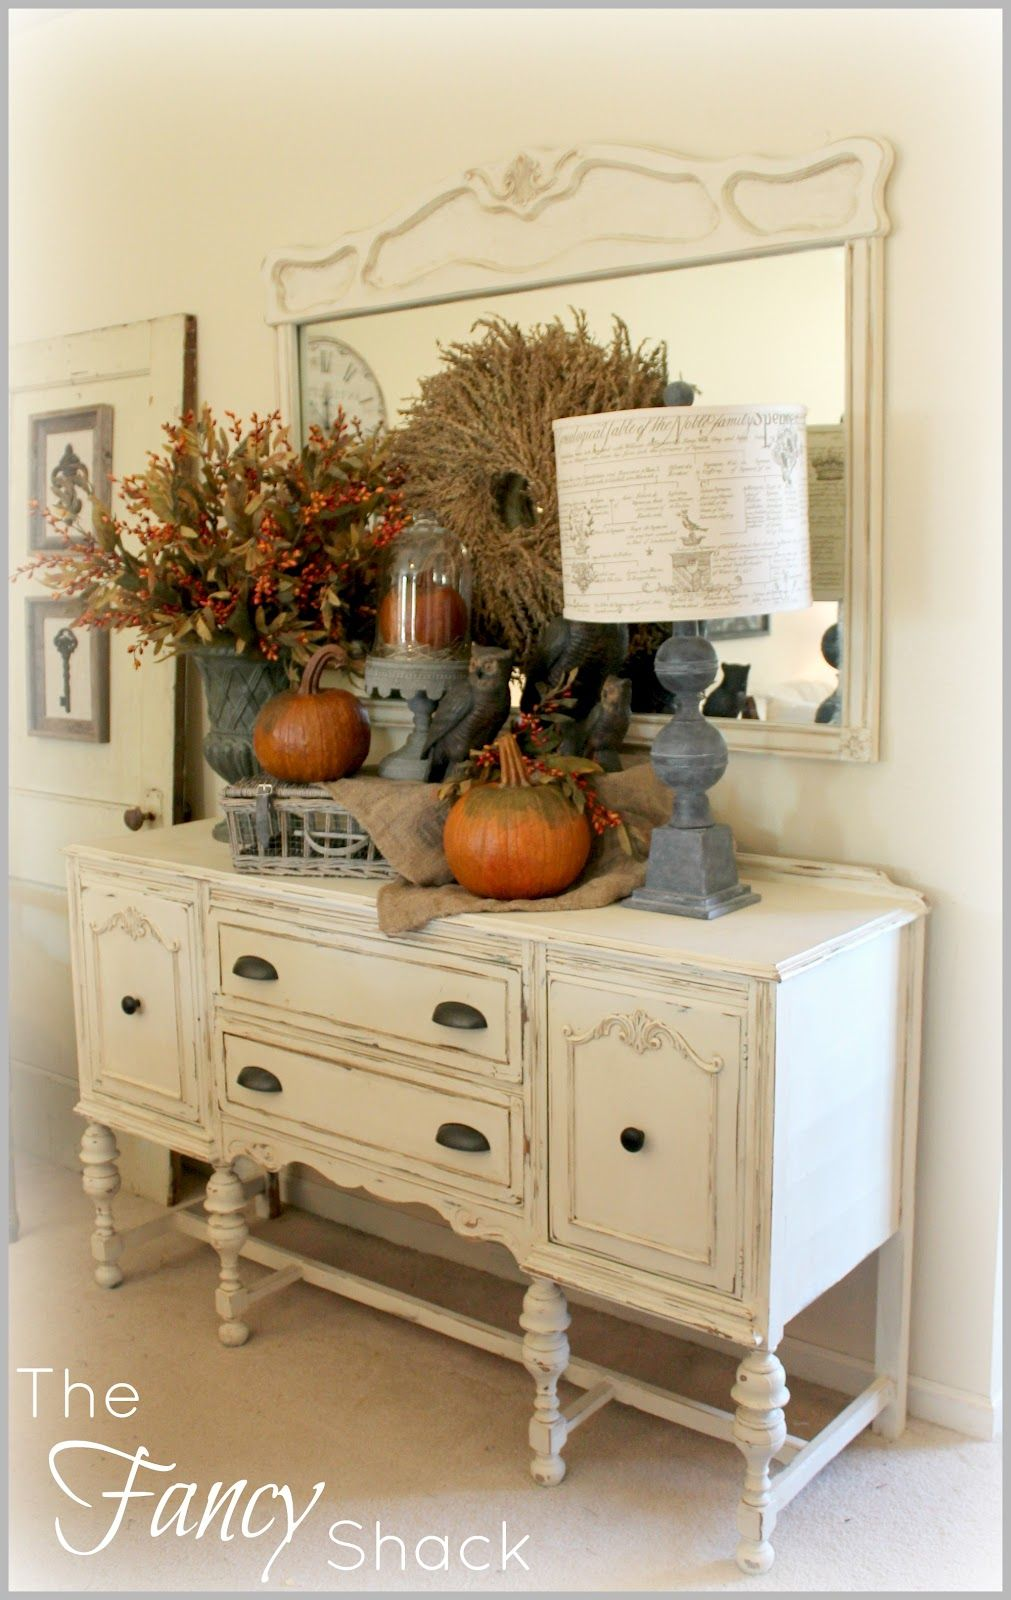 I like the old dresser, mirror, and the accessories but may be not so many in one spot. Editing the wreath on the mirror would be a good start.